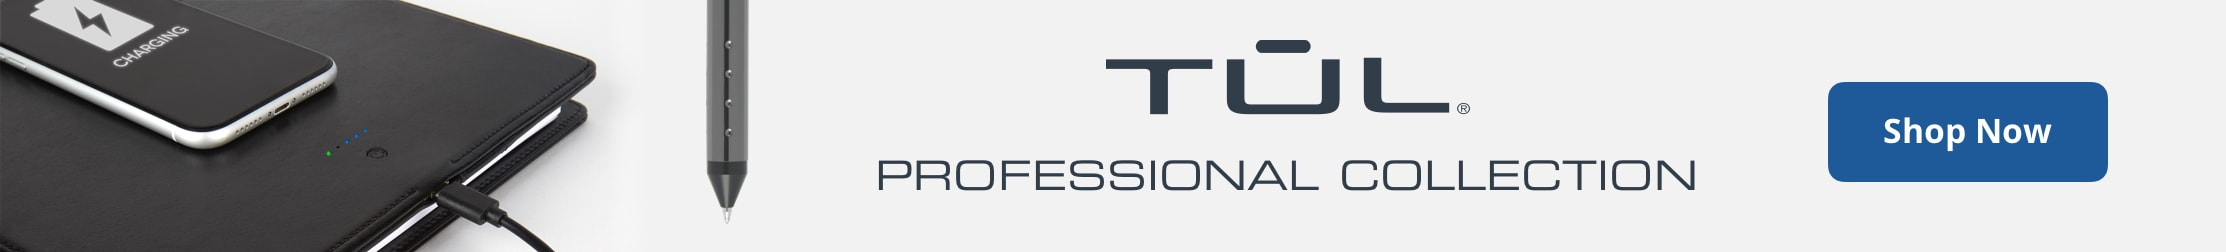 Introducing TUL PRO Bringing next-level innovation and sophistication to your workday.